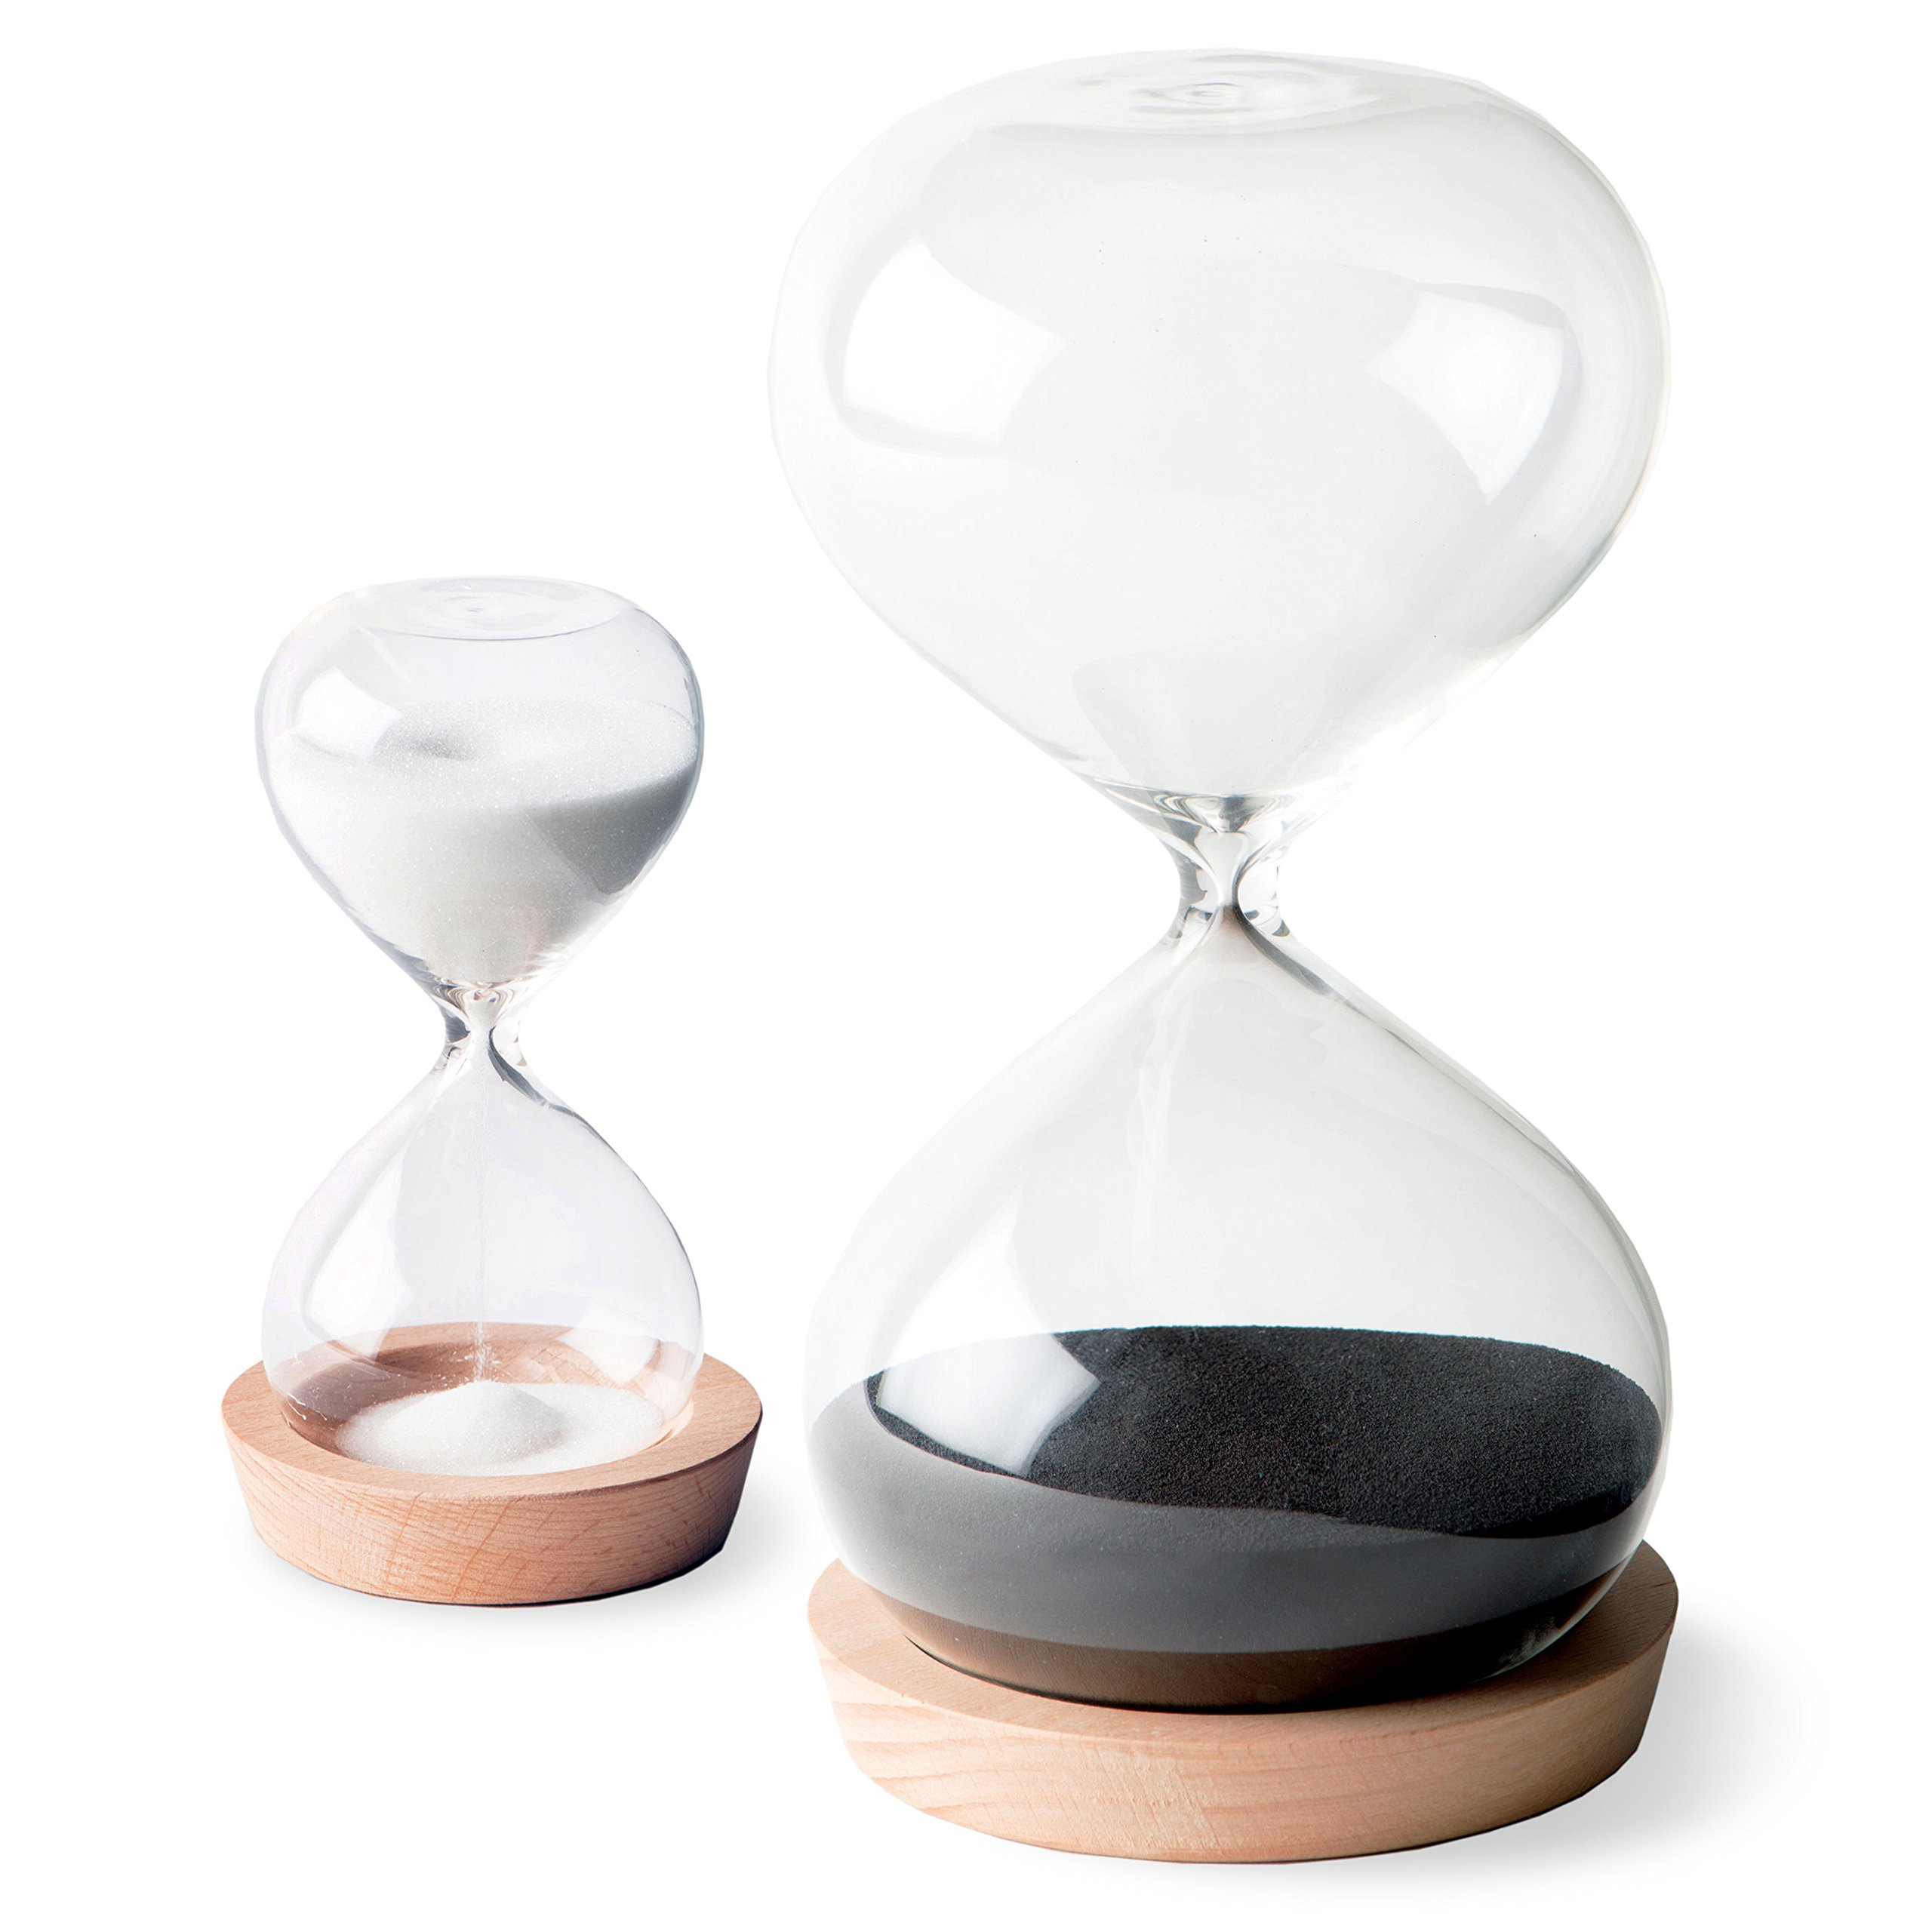 OrgaNice Hourglass Sand Timer - 30 Minute & 5 Minute Timer Set - Improve Productivity & Achieve Goals - Stay Focused & Be More Efficient - Time Management Tool - [Gift-Ready Packaging]